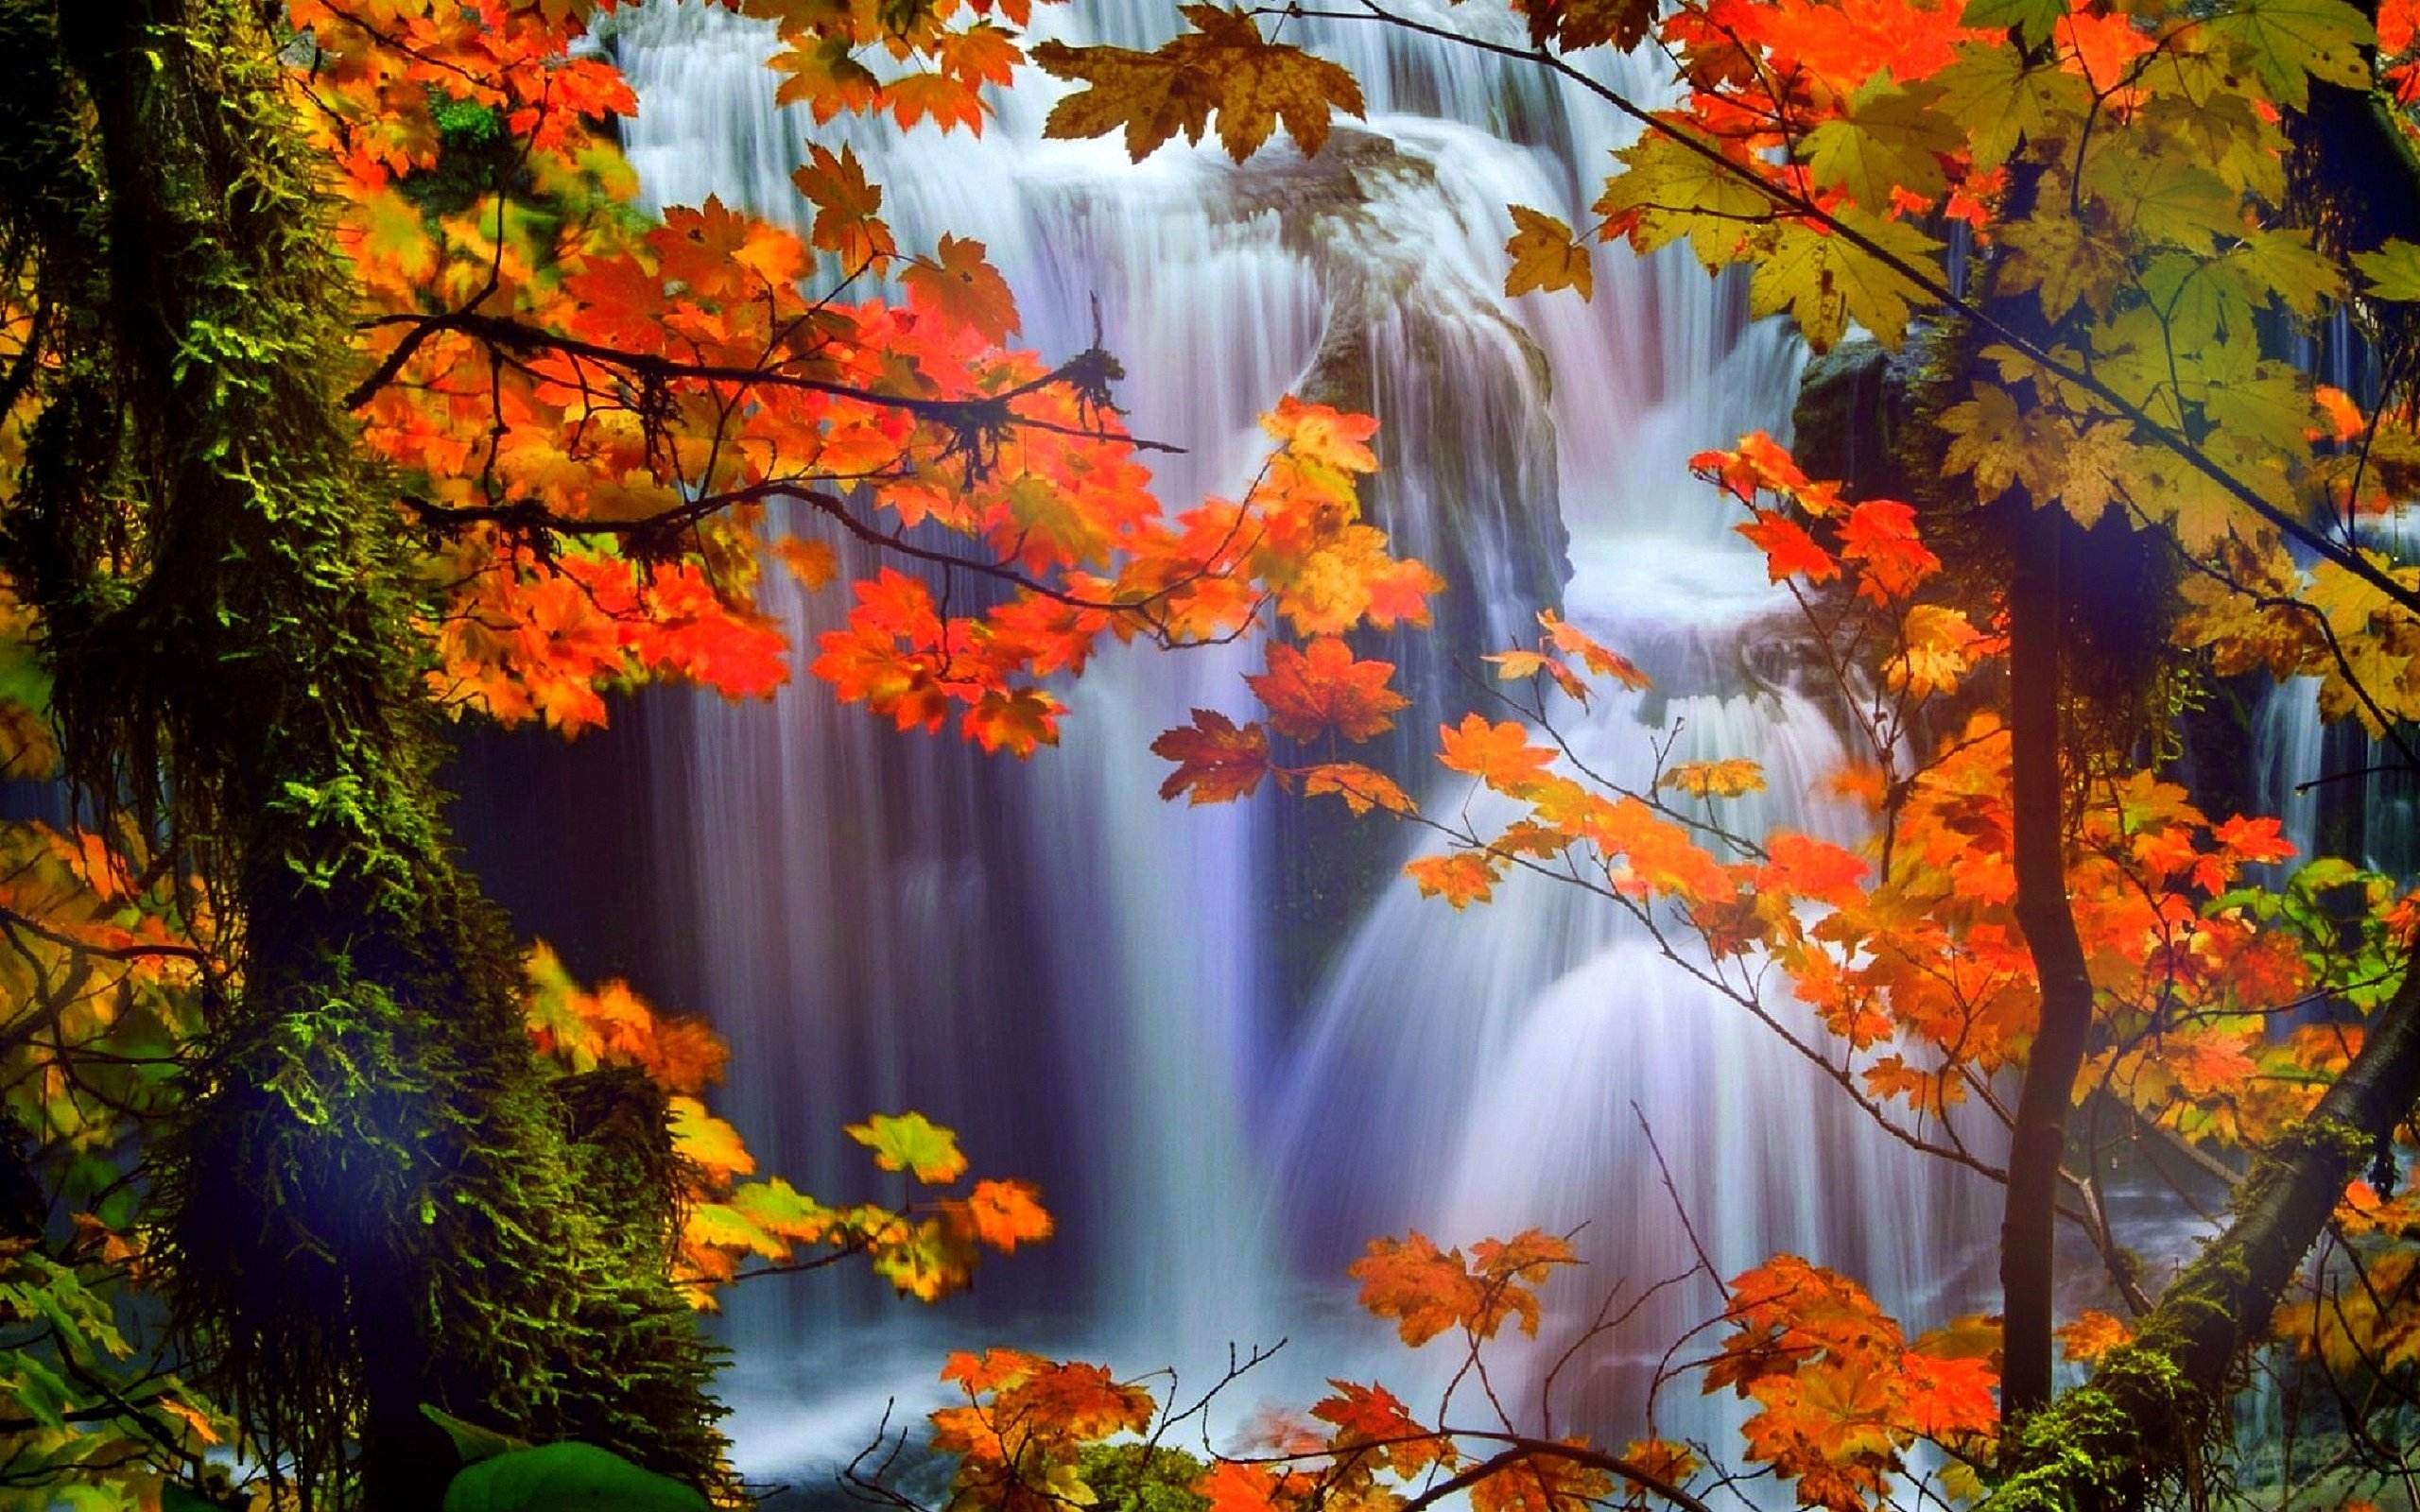 hd-fall-scenery-picture - wallpaper.wiki